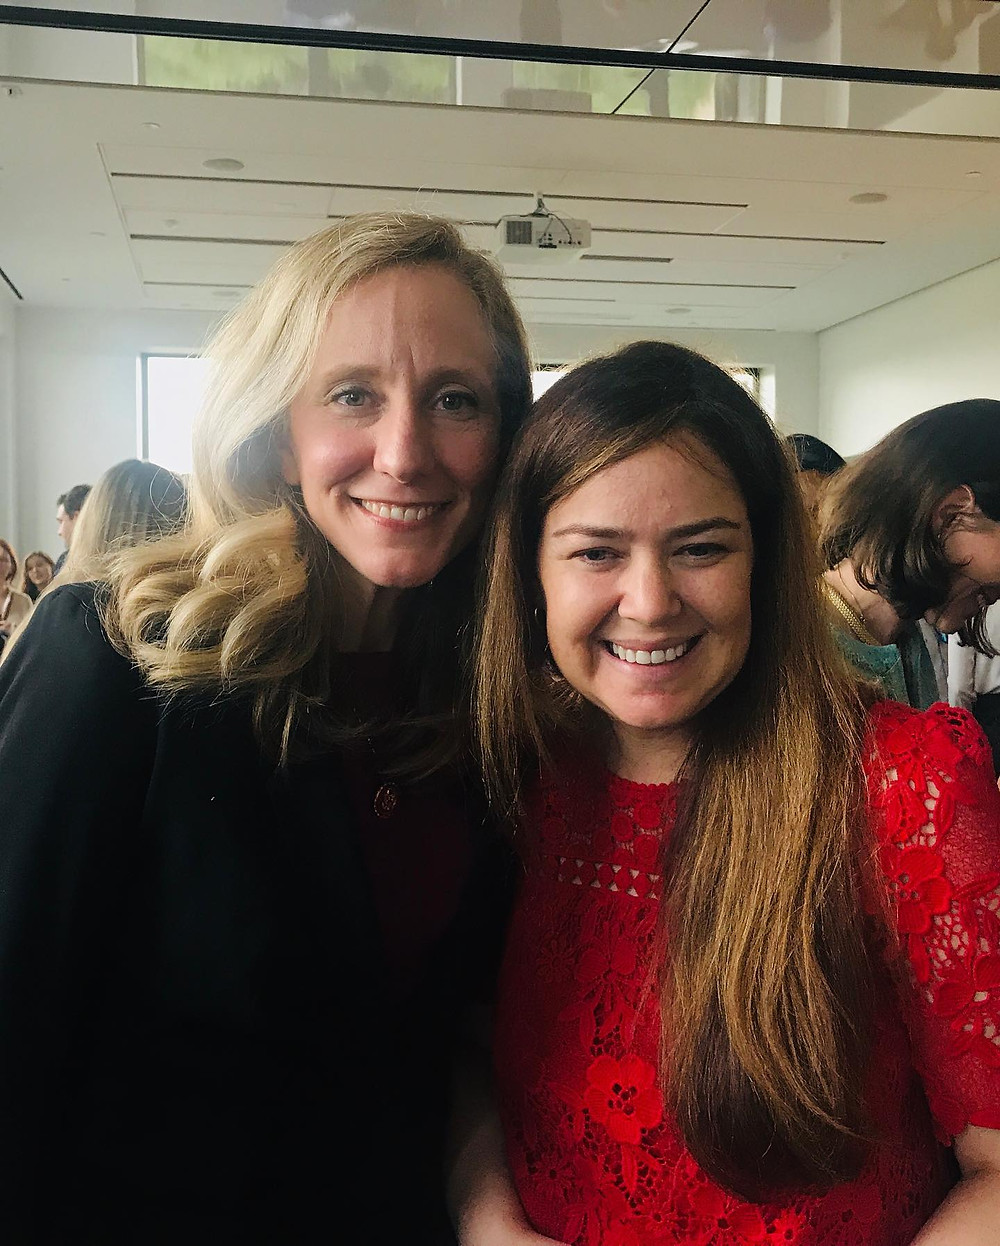 Kristin and Congresswoman Spanberger stand side by side with smiles on their faces. Kristin is wearing a red lace shirt and the Congresswoman has on a black blazer.